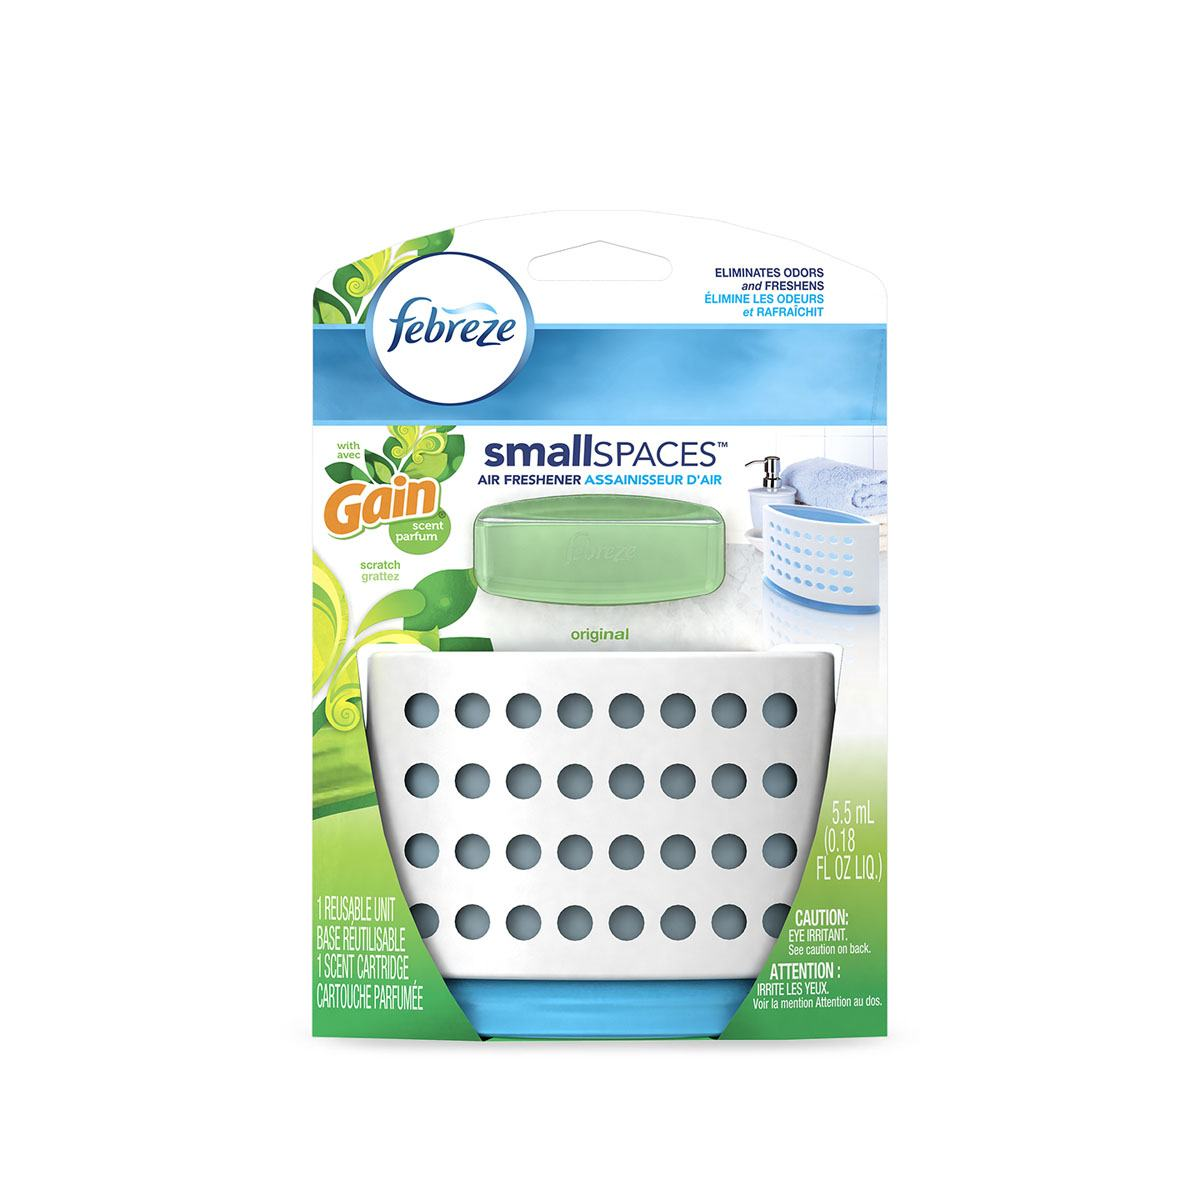 Assainisseur d'air Febreze SmallSpaces avec Gain Original